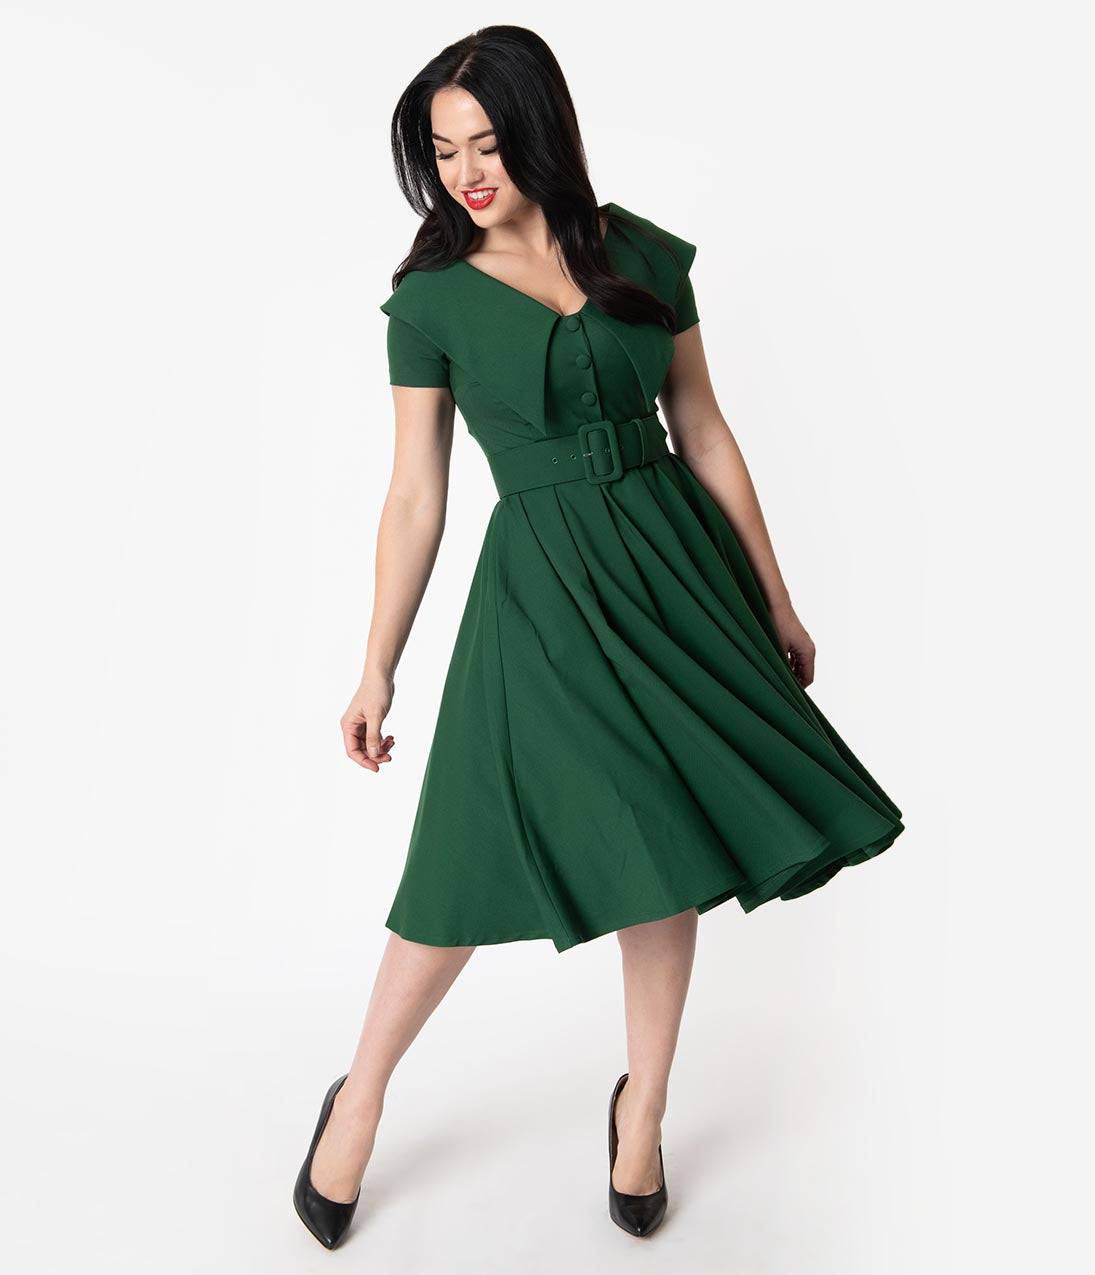 1950s Fashion History: Women's Clothing Vintage Diva 1950S Green Wide Collar Belted Joan Swing Dress $132.00 AT vintagedancer.com